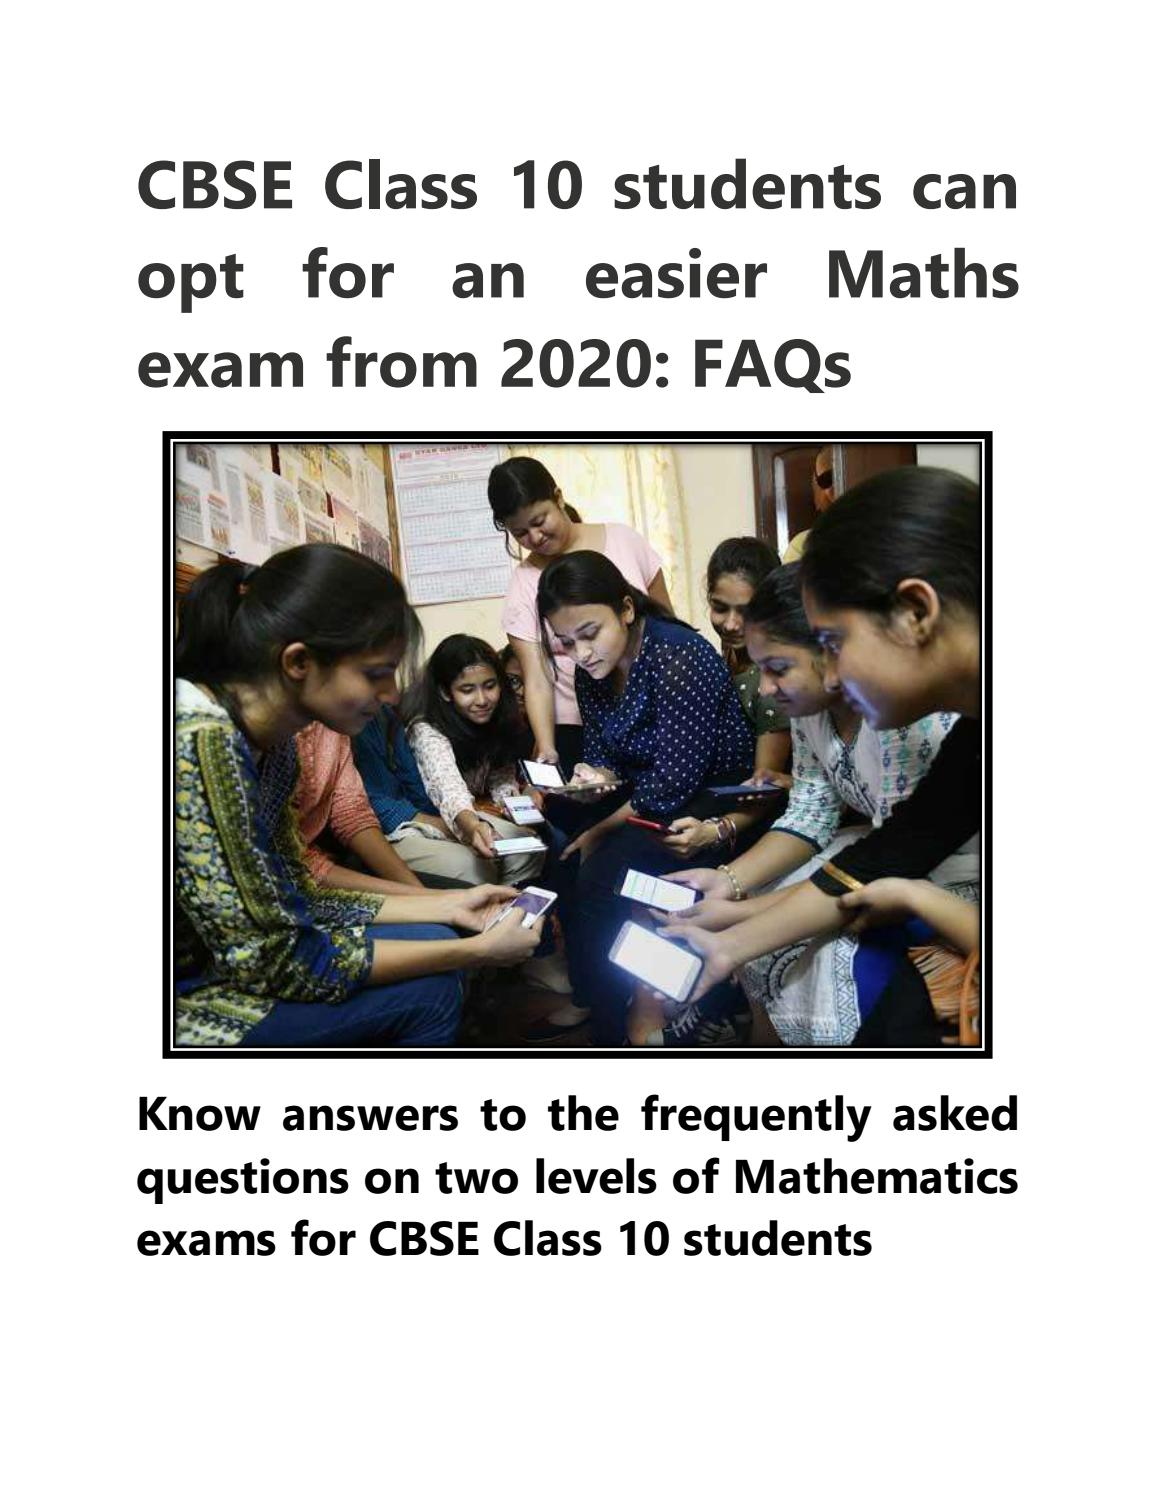 CBSE Class 10 Students Can Opt for an Easier Maths Exam From